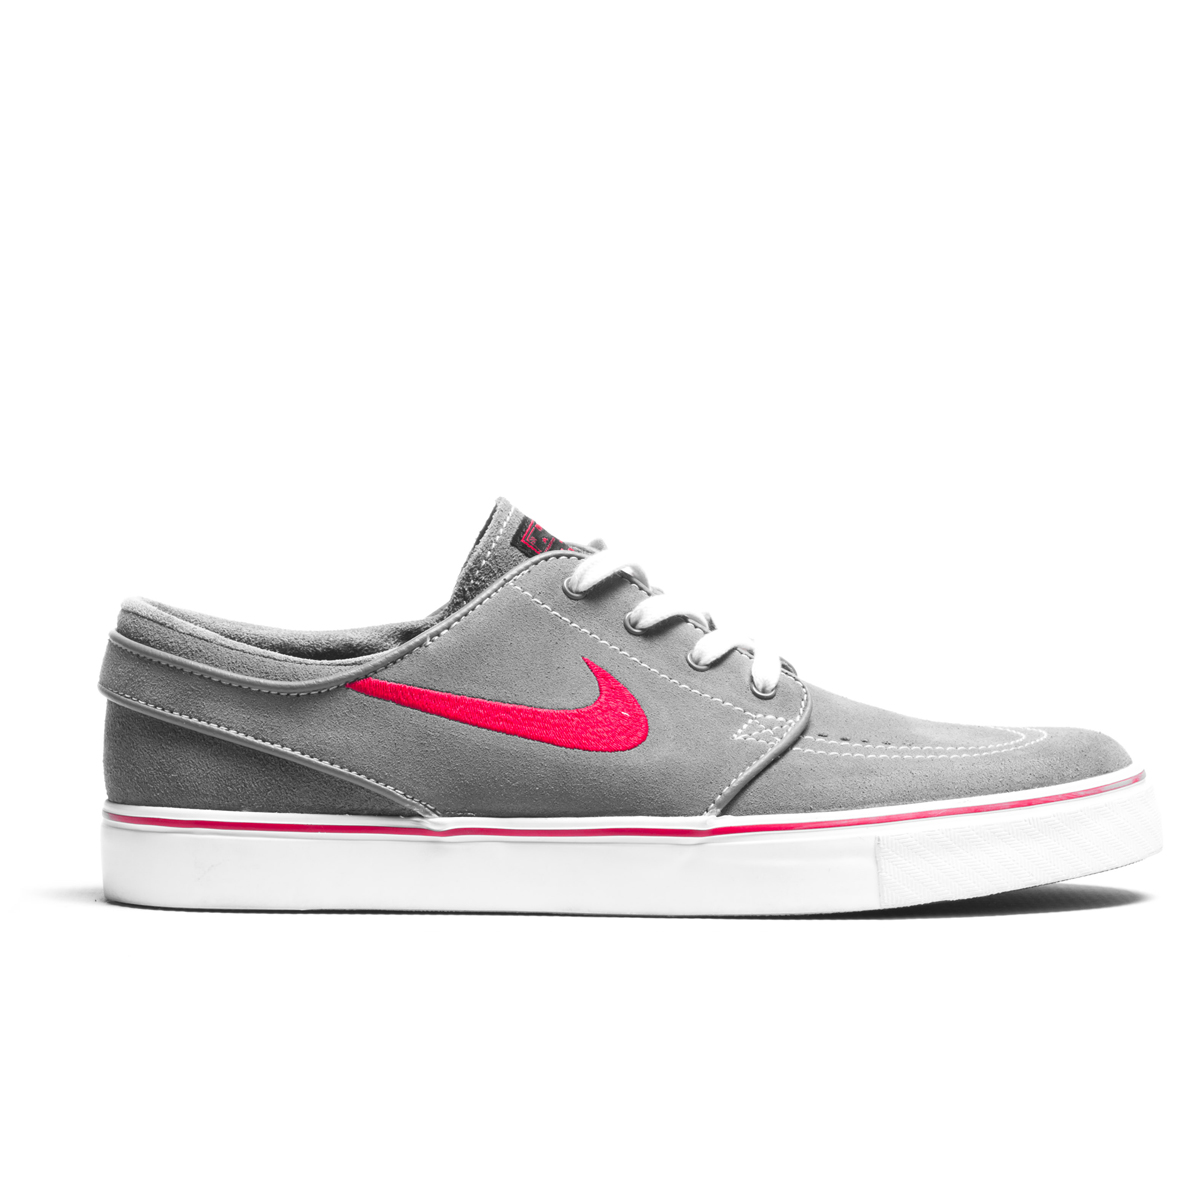 Buty Nike Zoom Stefan Janoski Cool Grey / Black / University Red / Cool Grey